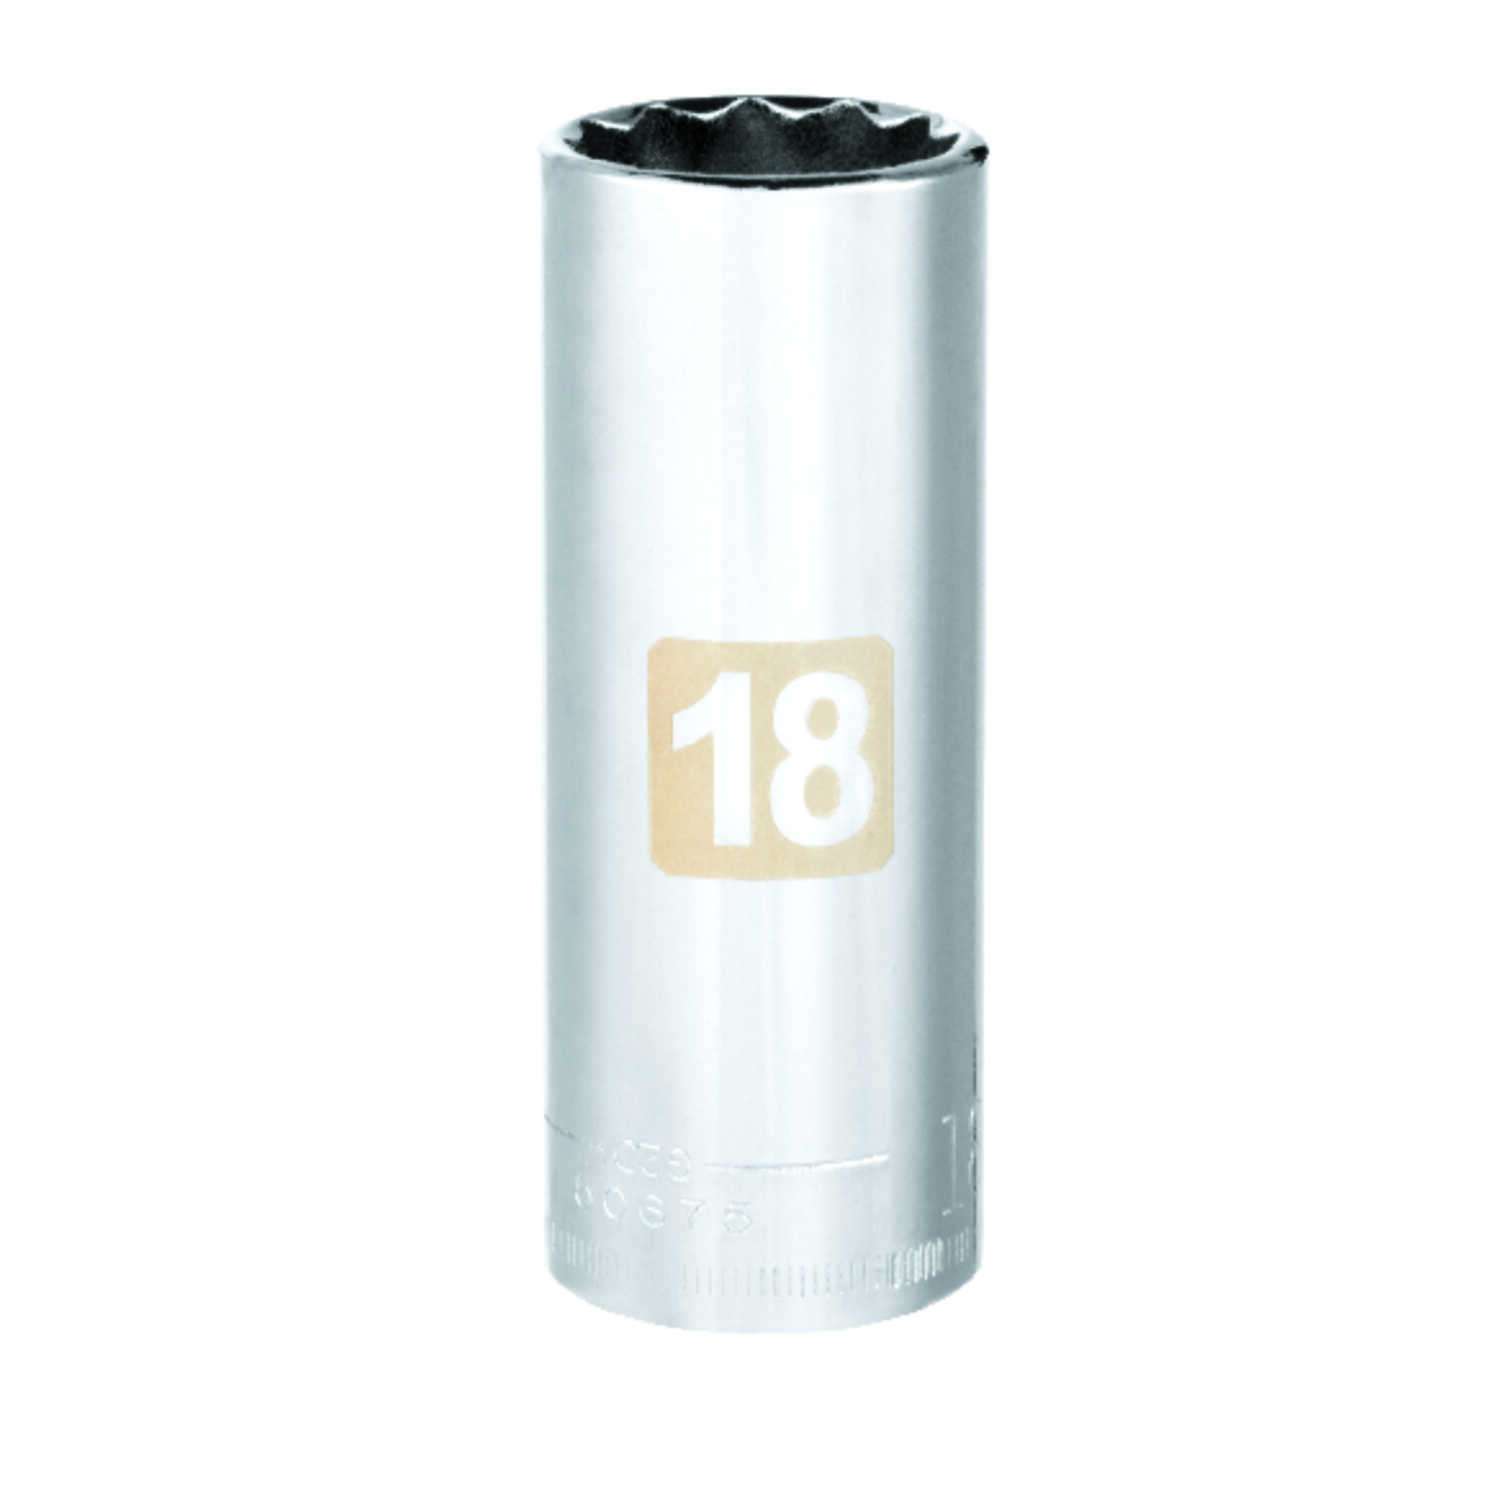 Craftsman  18 mm  x 3/8 in. drive  Metric  12 Point Deep  Socket  1 pc.